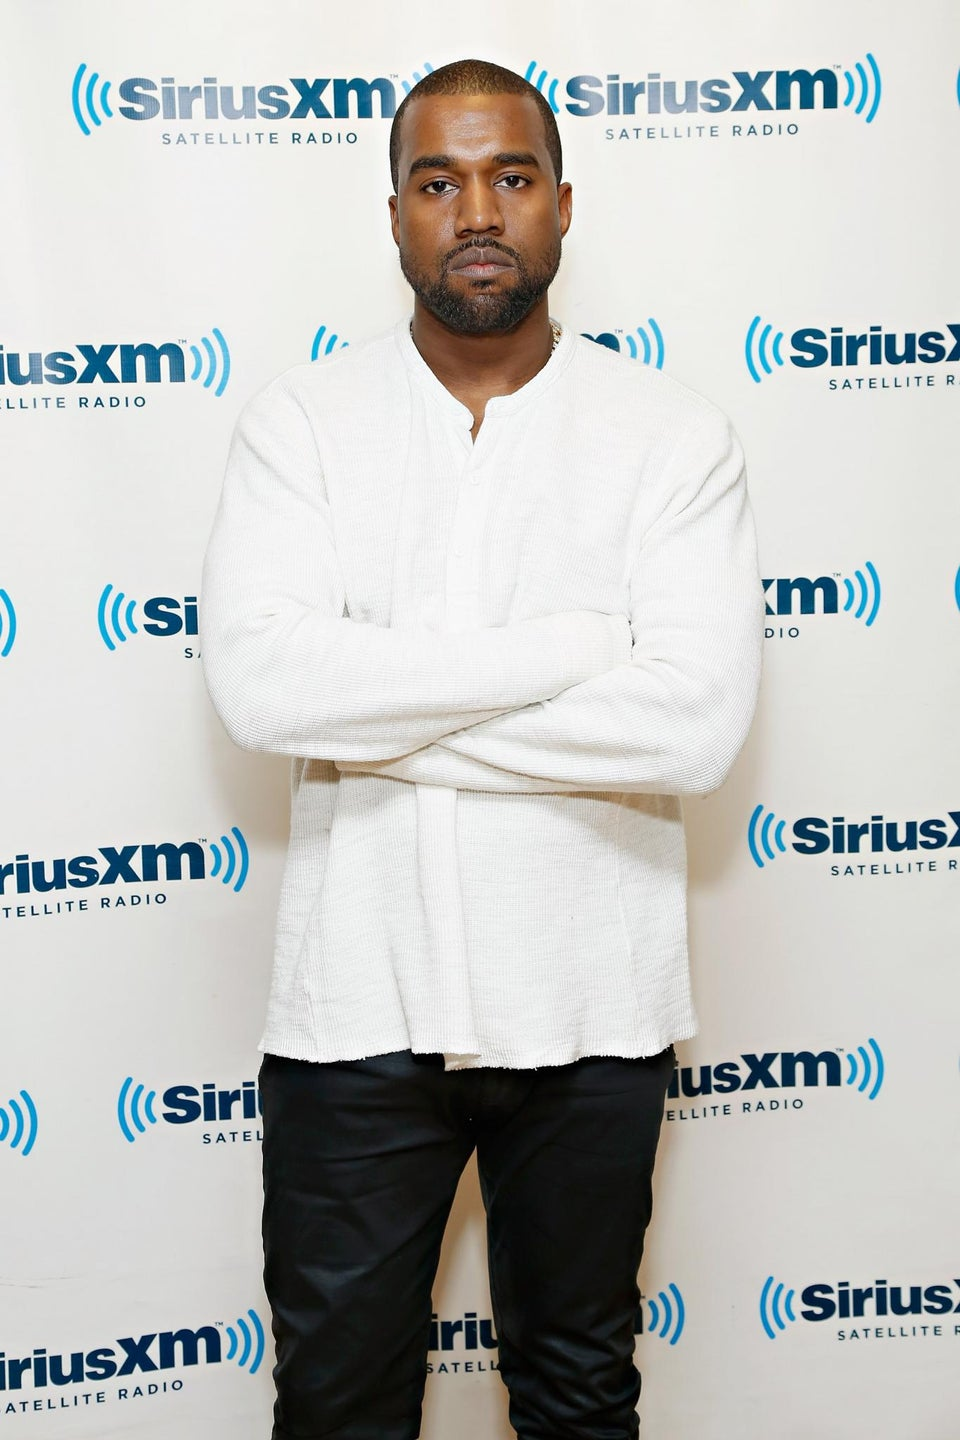 District Attorney Declines to Prosecute Kanye West in Brawl